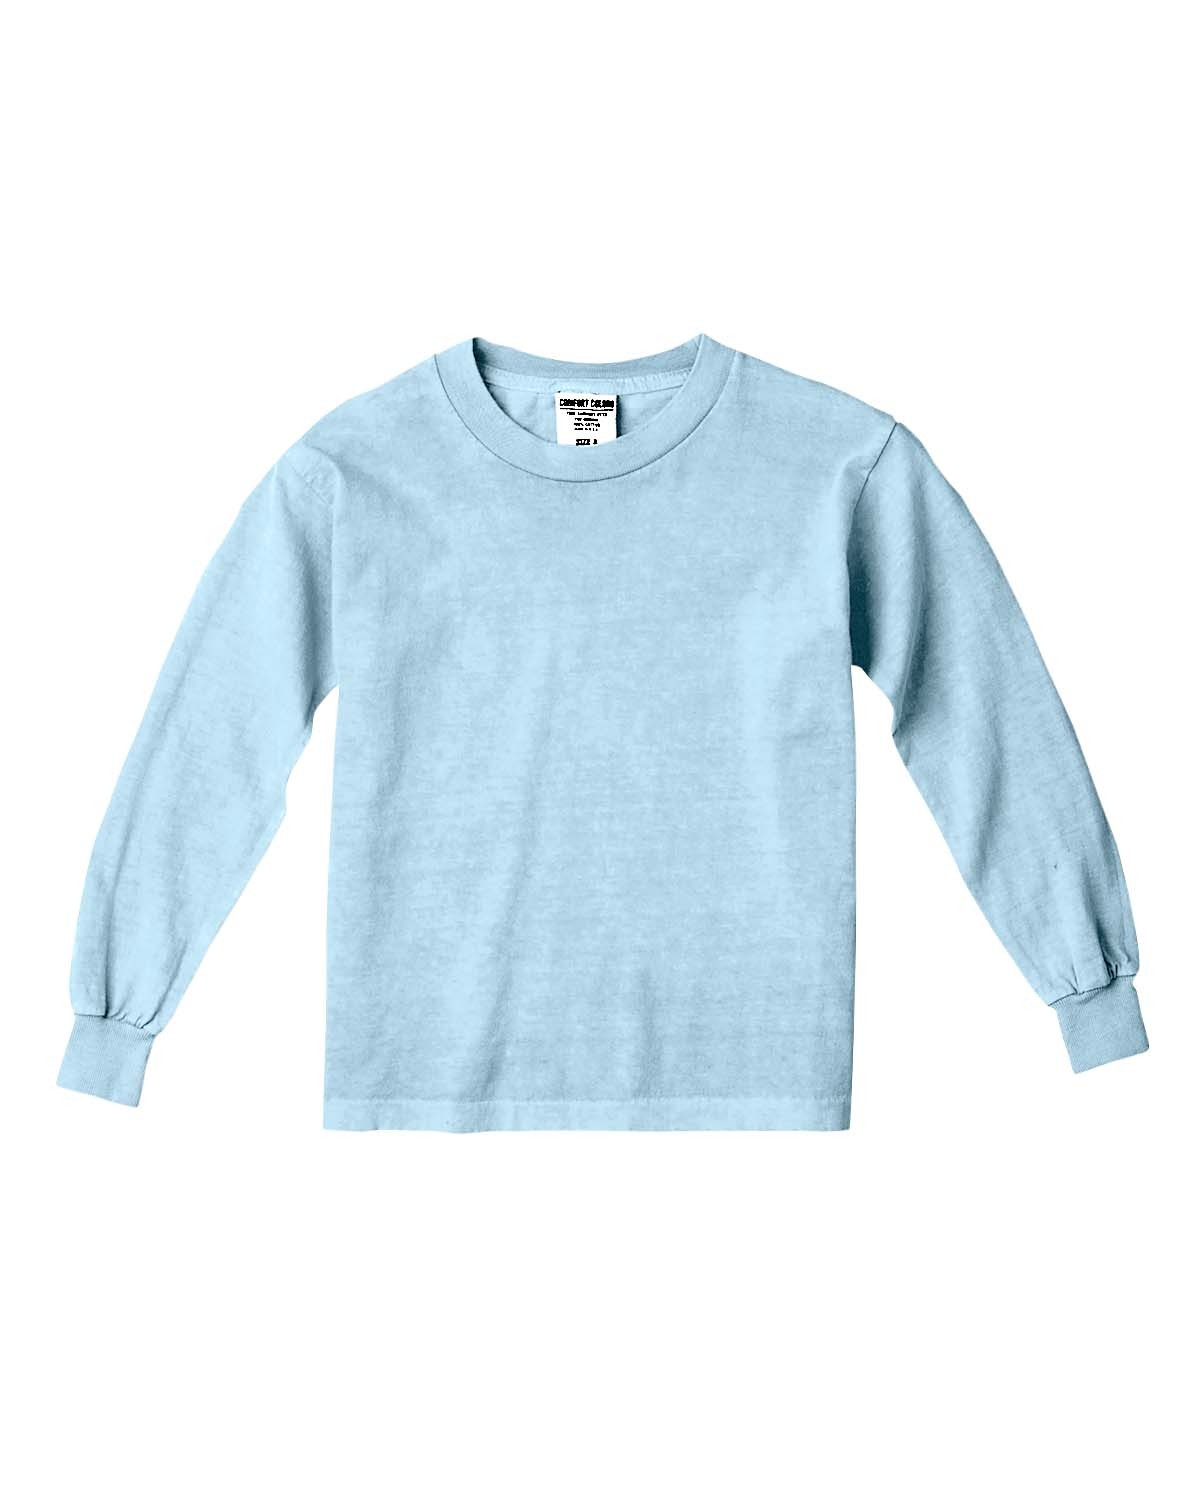 C3483 Comfort Colors Drop Ship CHAMBRAY